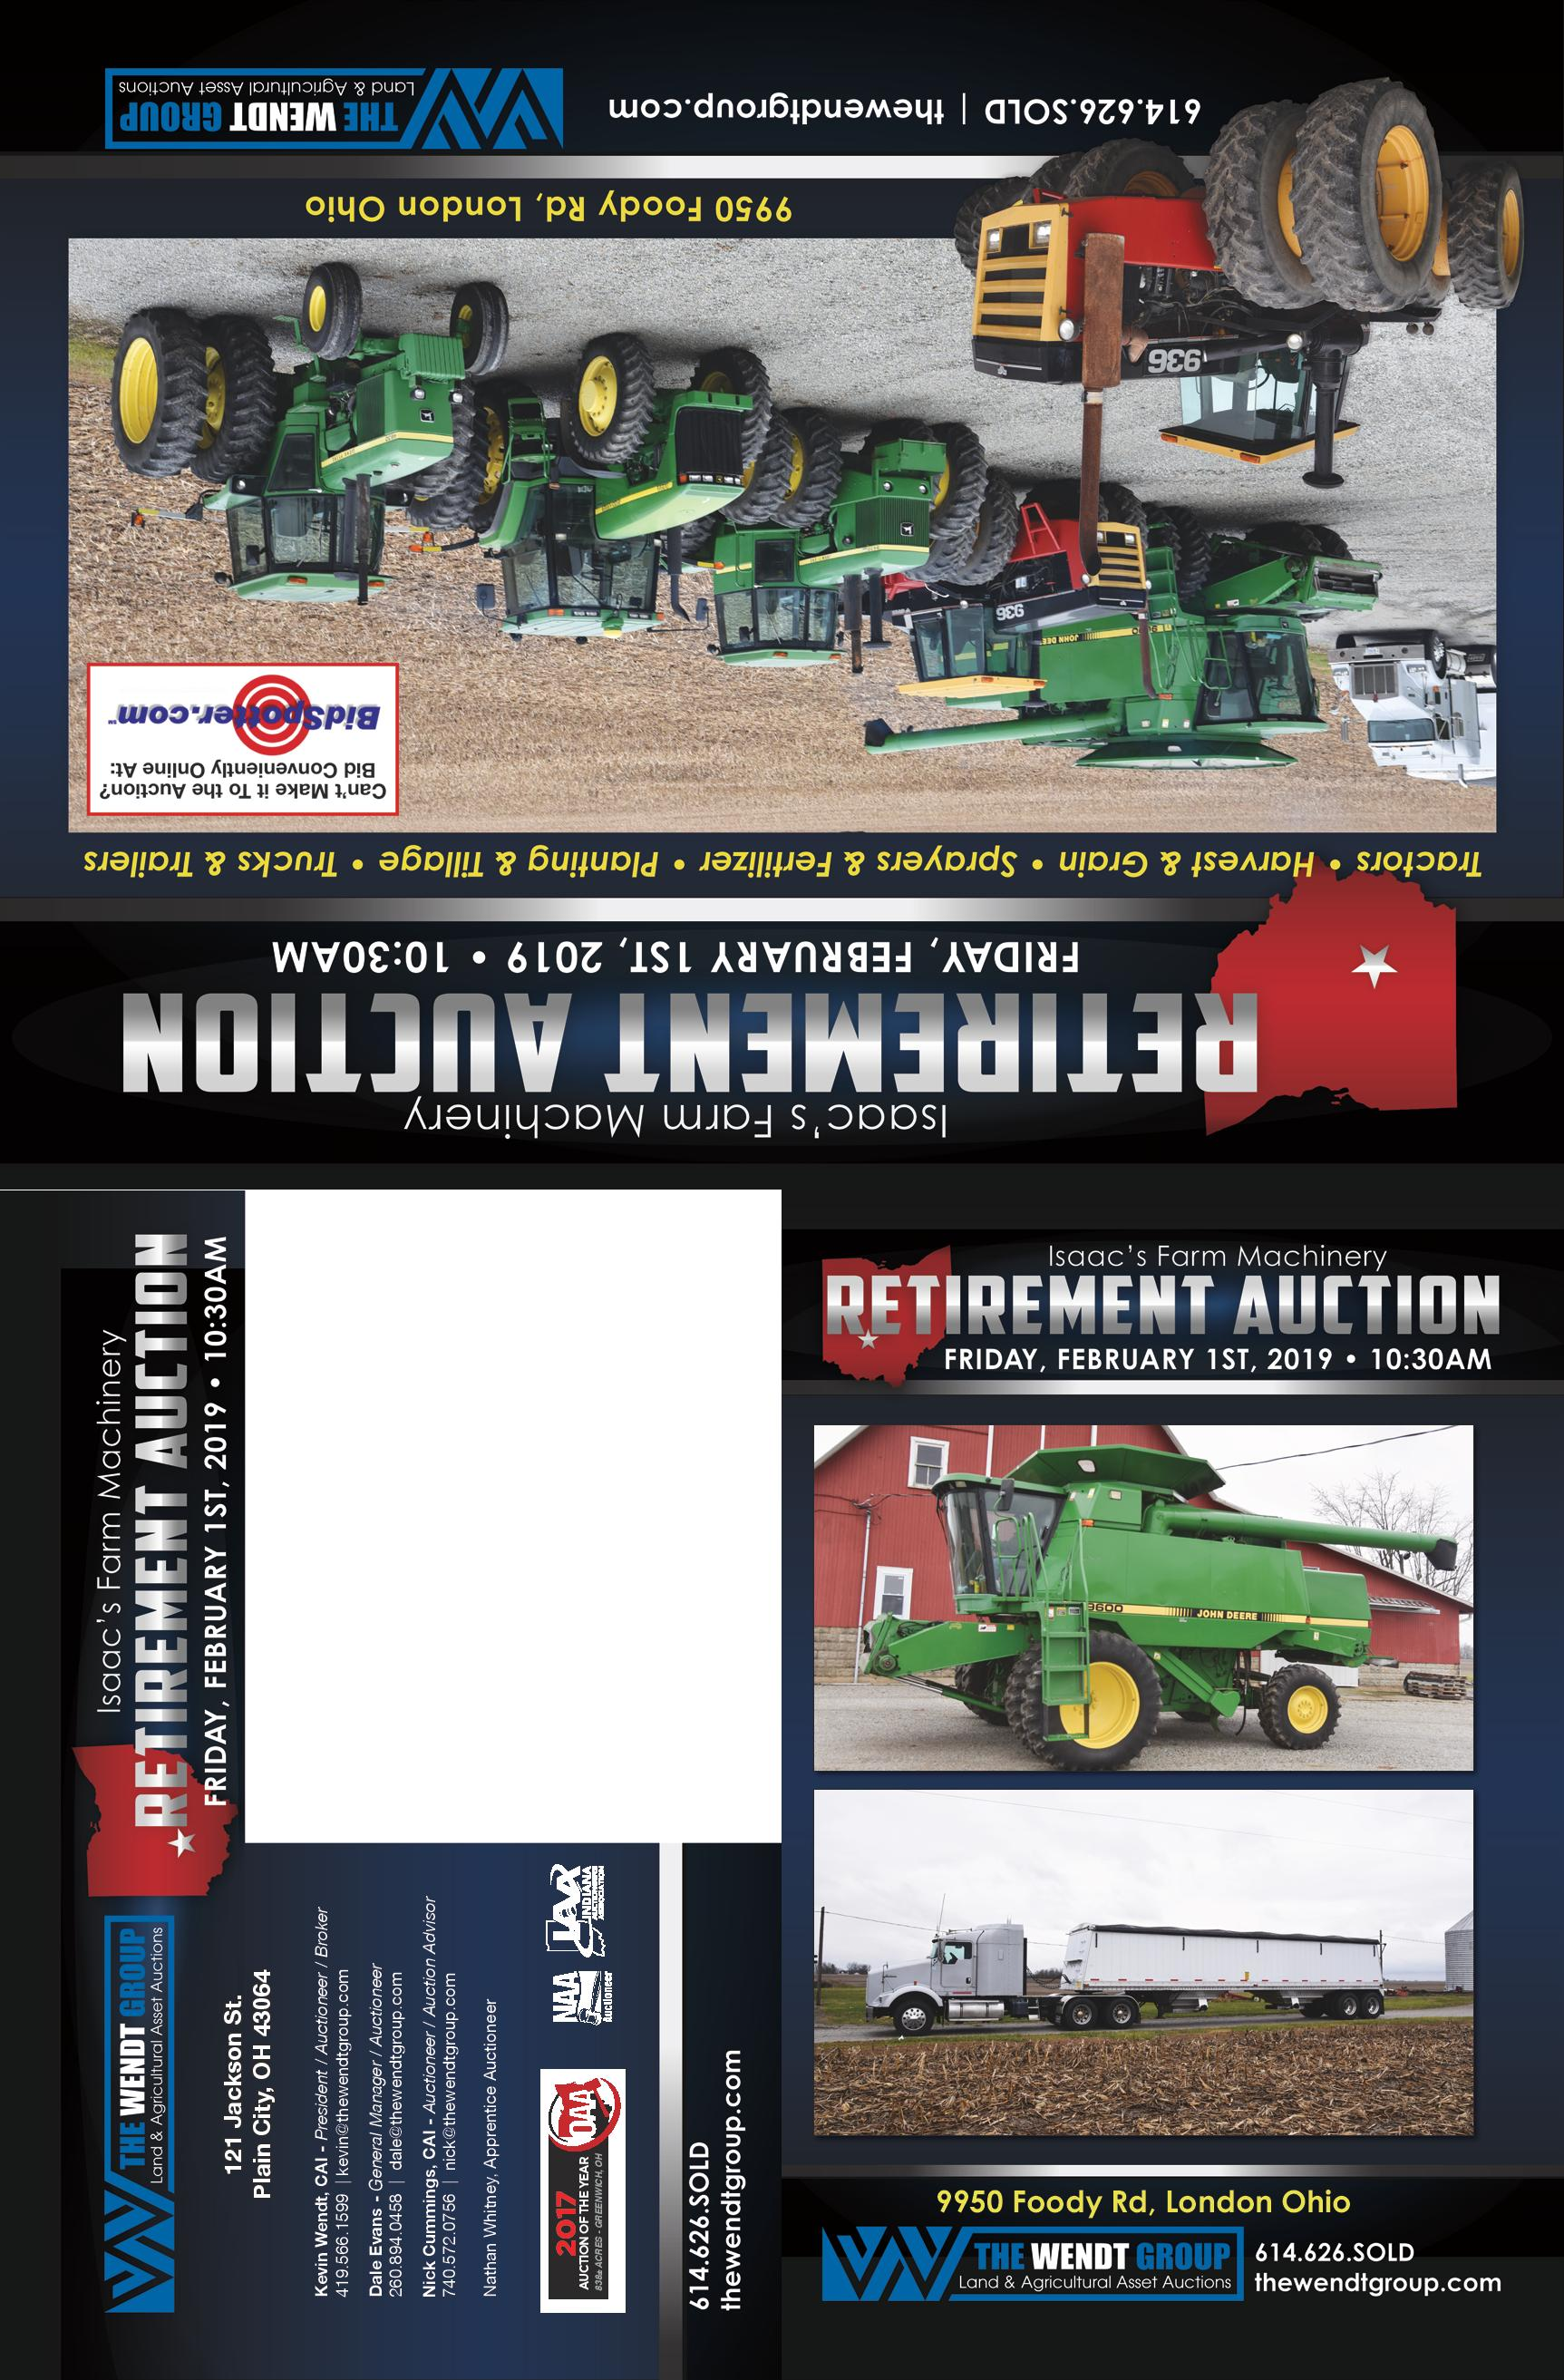 Isaacs Farm Machinery Retirement Auction